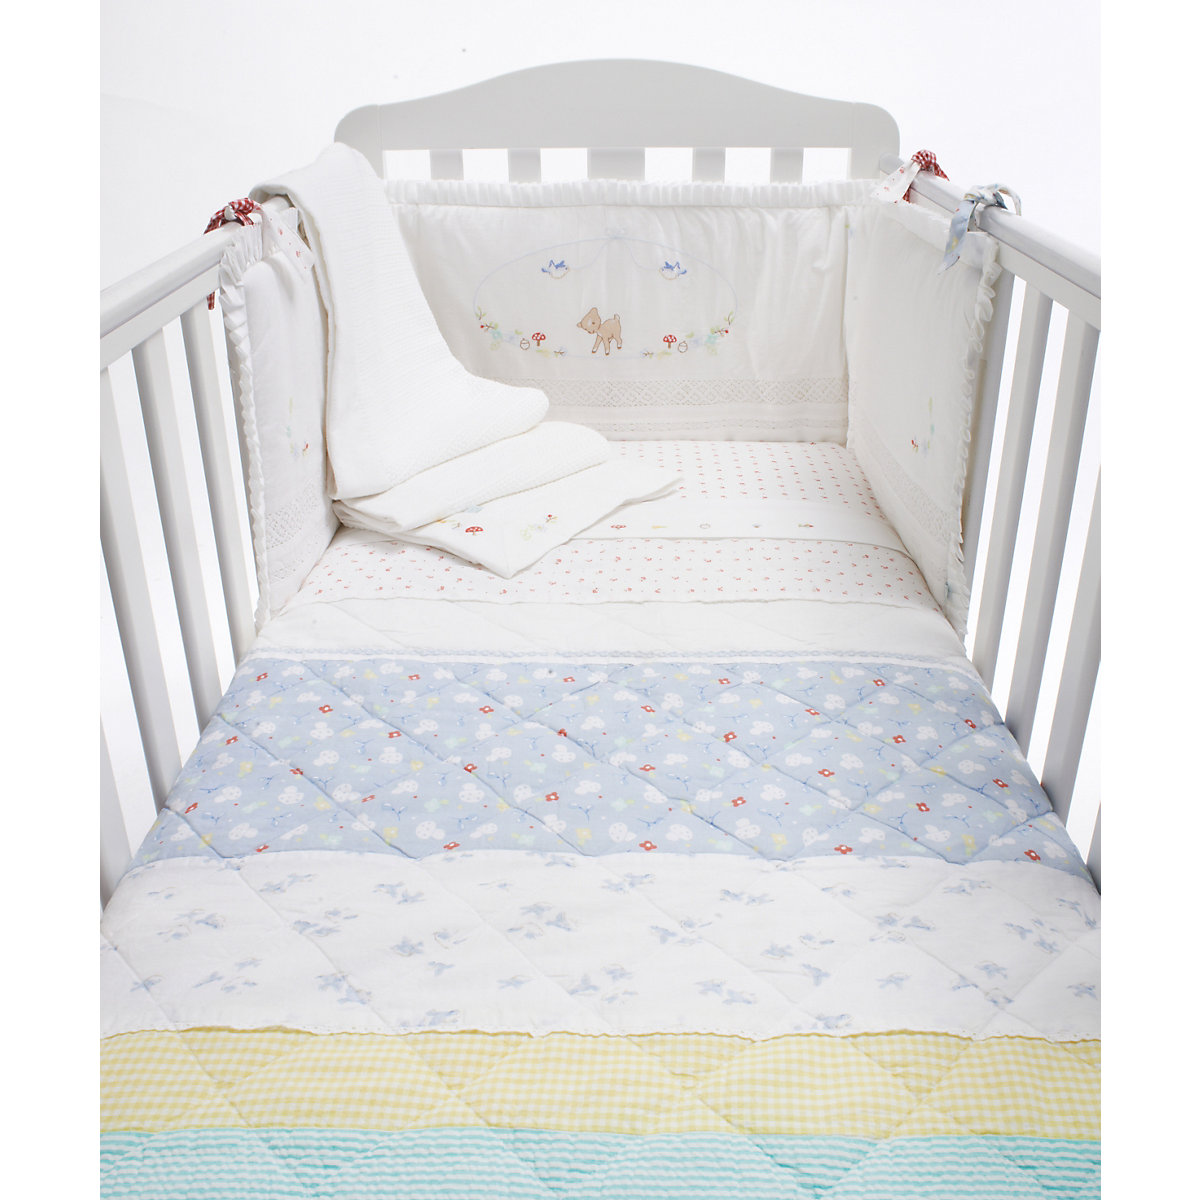 Little Bird By Jools Bed In A Bag Kohoo For Baby Amp Kids